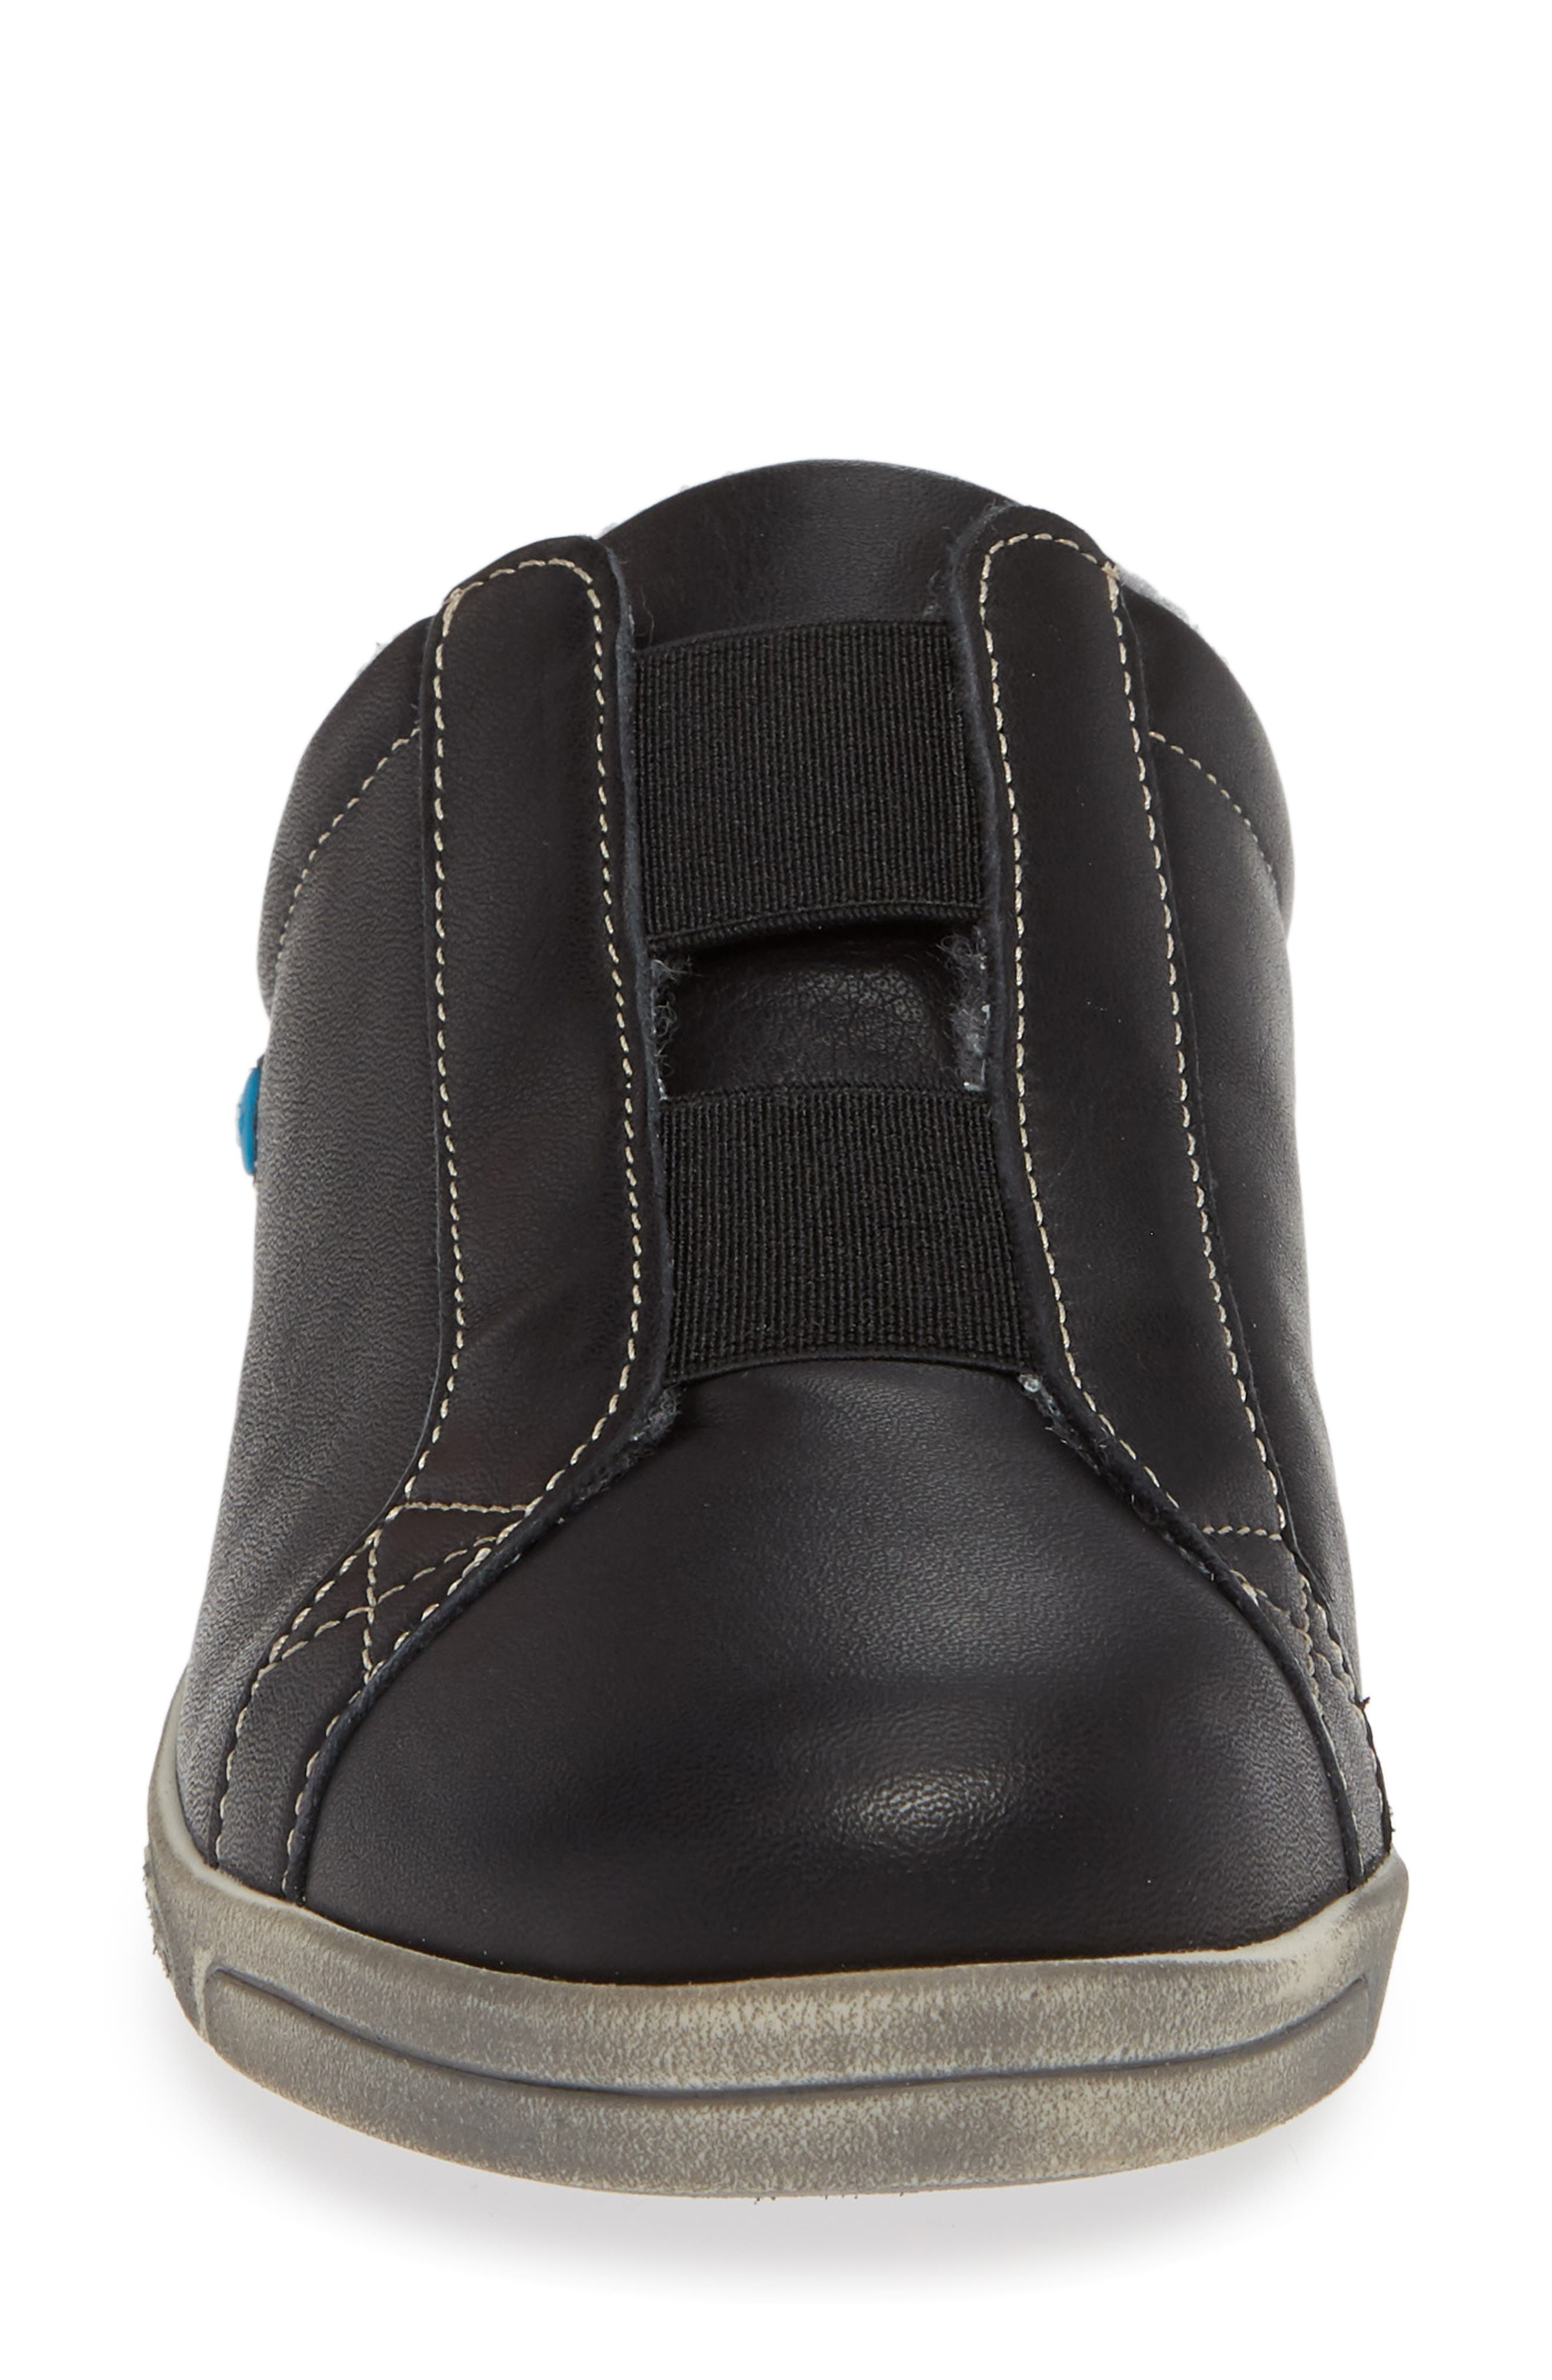 Alexis Wool Lined Backless Sneaker,                             Alternate thumbnail 4, color,                             BLACK LEATHER